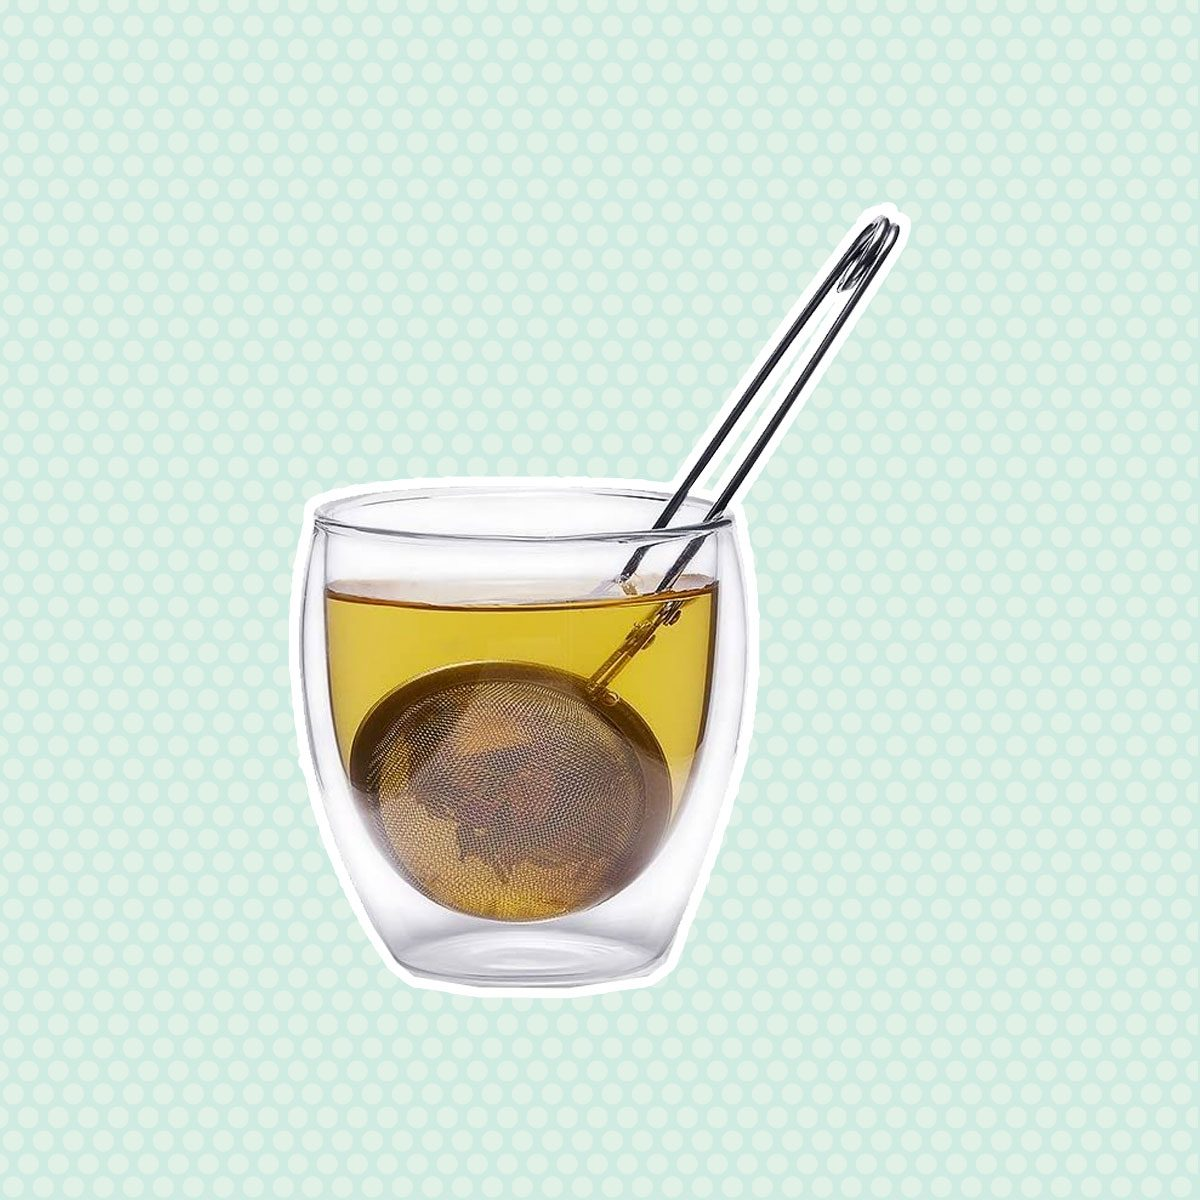 3 Pack Snap Ball Tea Strainer with Handle for Loose Leaf Tea and Mulling Spices